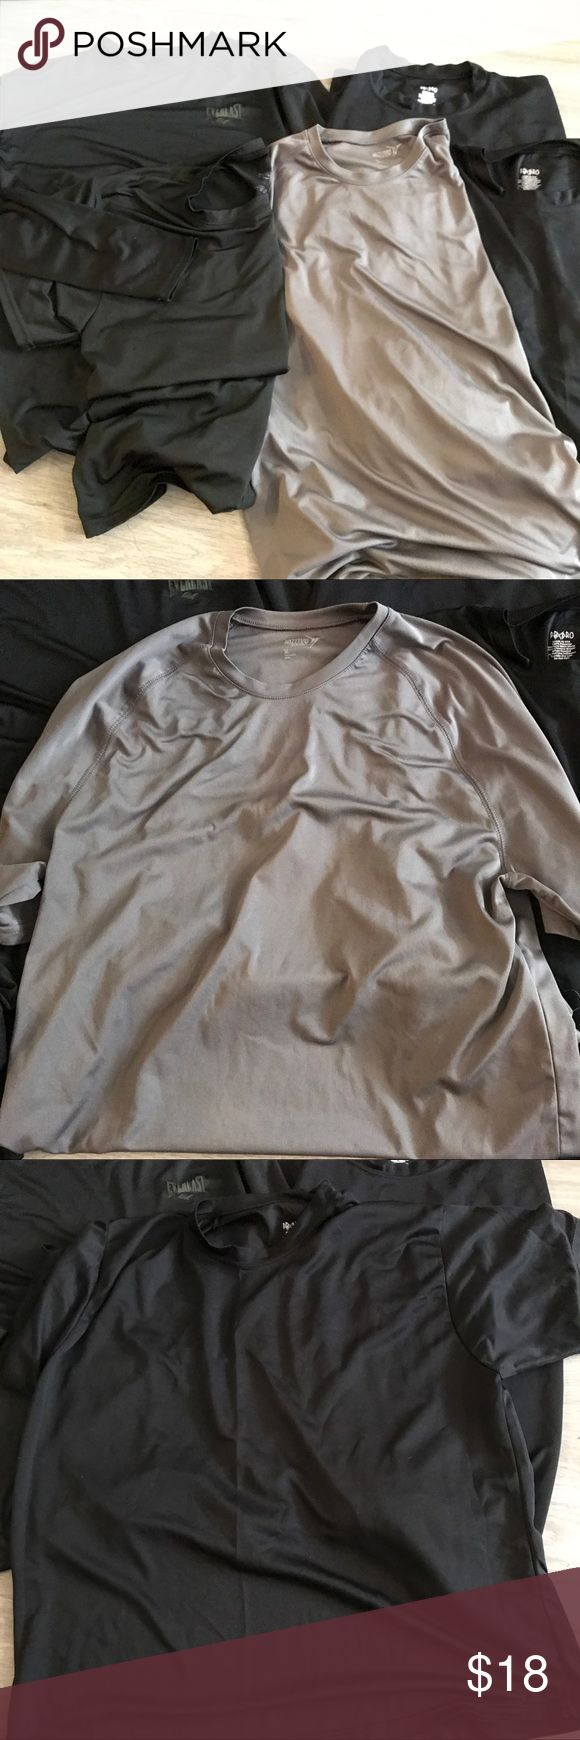 Men's XL Compression Top Bundle All tops in excellent condition. 1 everlast XXL long sleeve top (fits like XL), 1 everlast XXL short sleeve top (fits like XL), 2 XL PBX Pro short sleeve tops, 1 XL Old Navy short sleeve compression top. Old Navy Shirts Tees - Short Sleeve